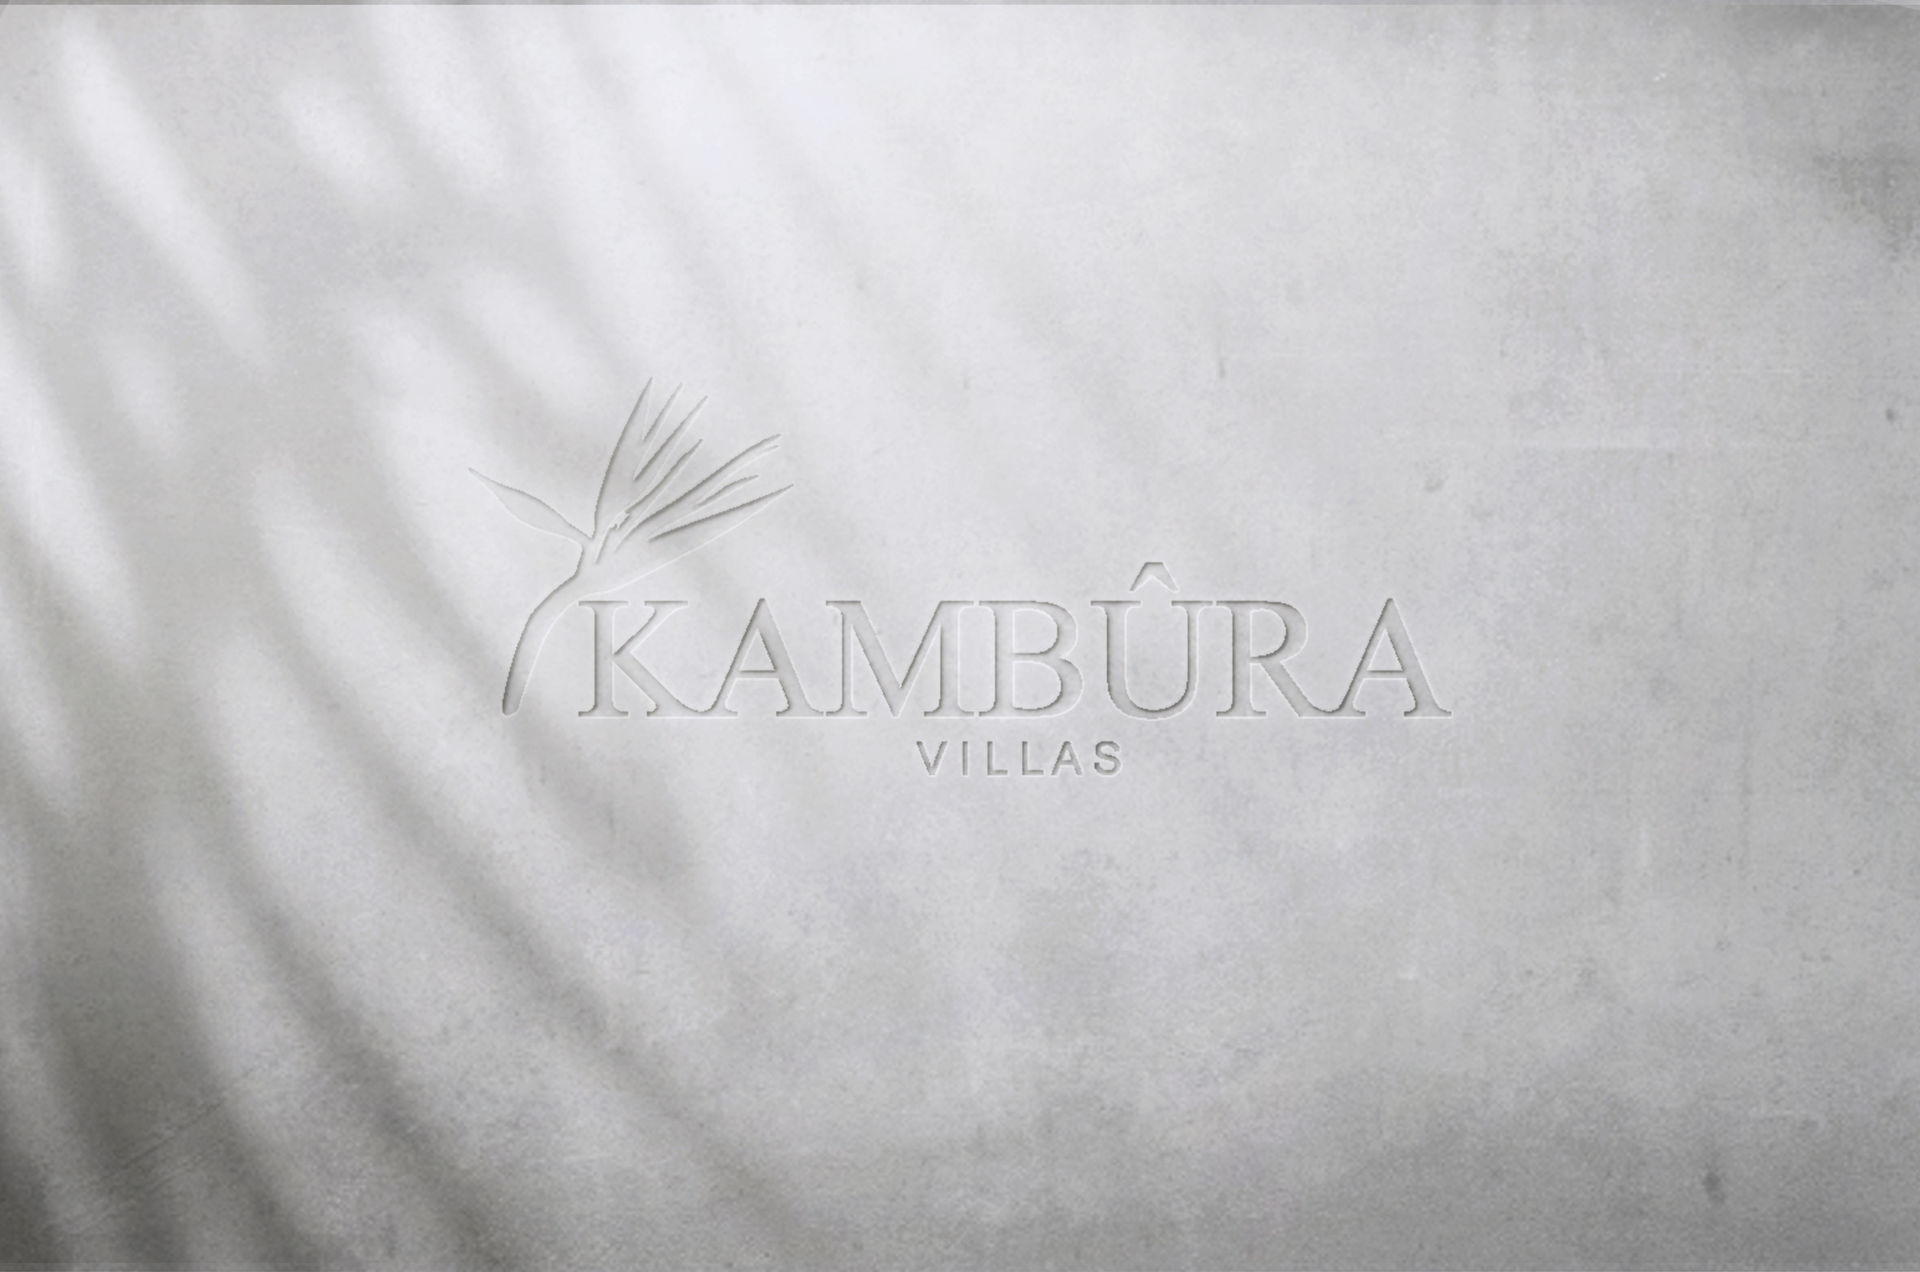 kambura villa shaddow.jpg